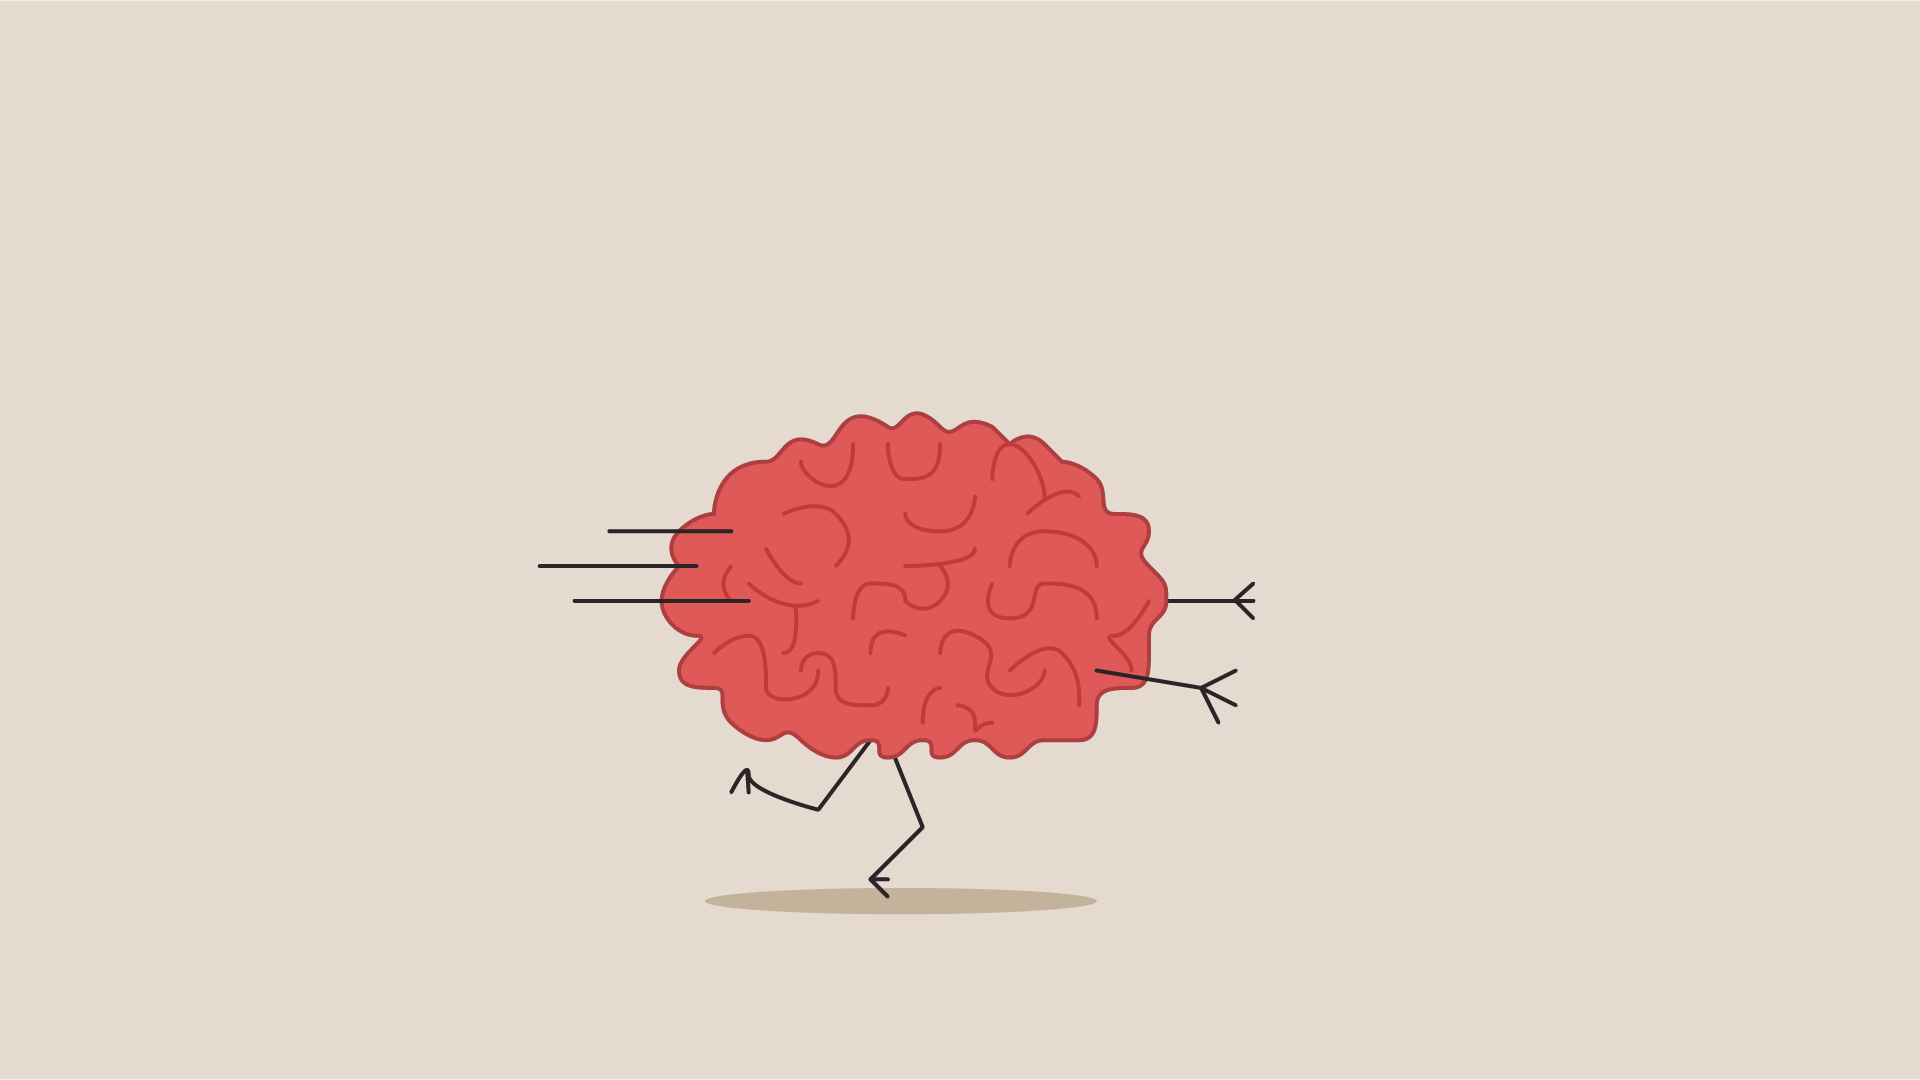 Heuristics, these daily thought shortcuts